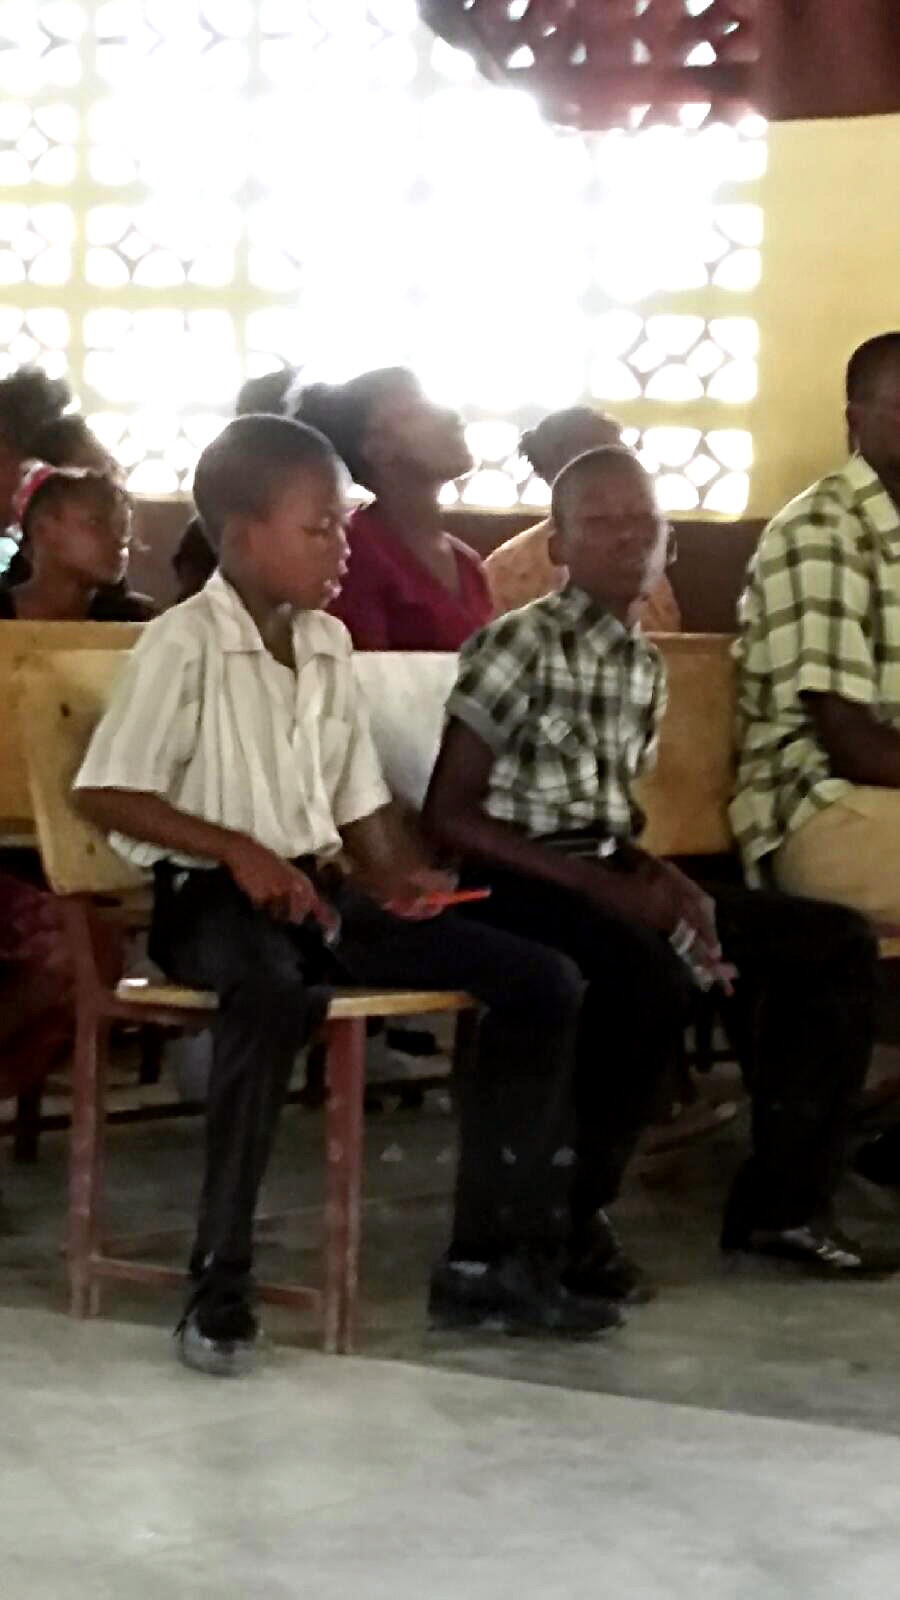 Intently playing drums in church